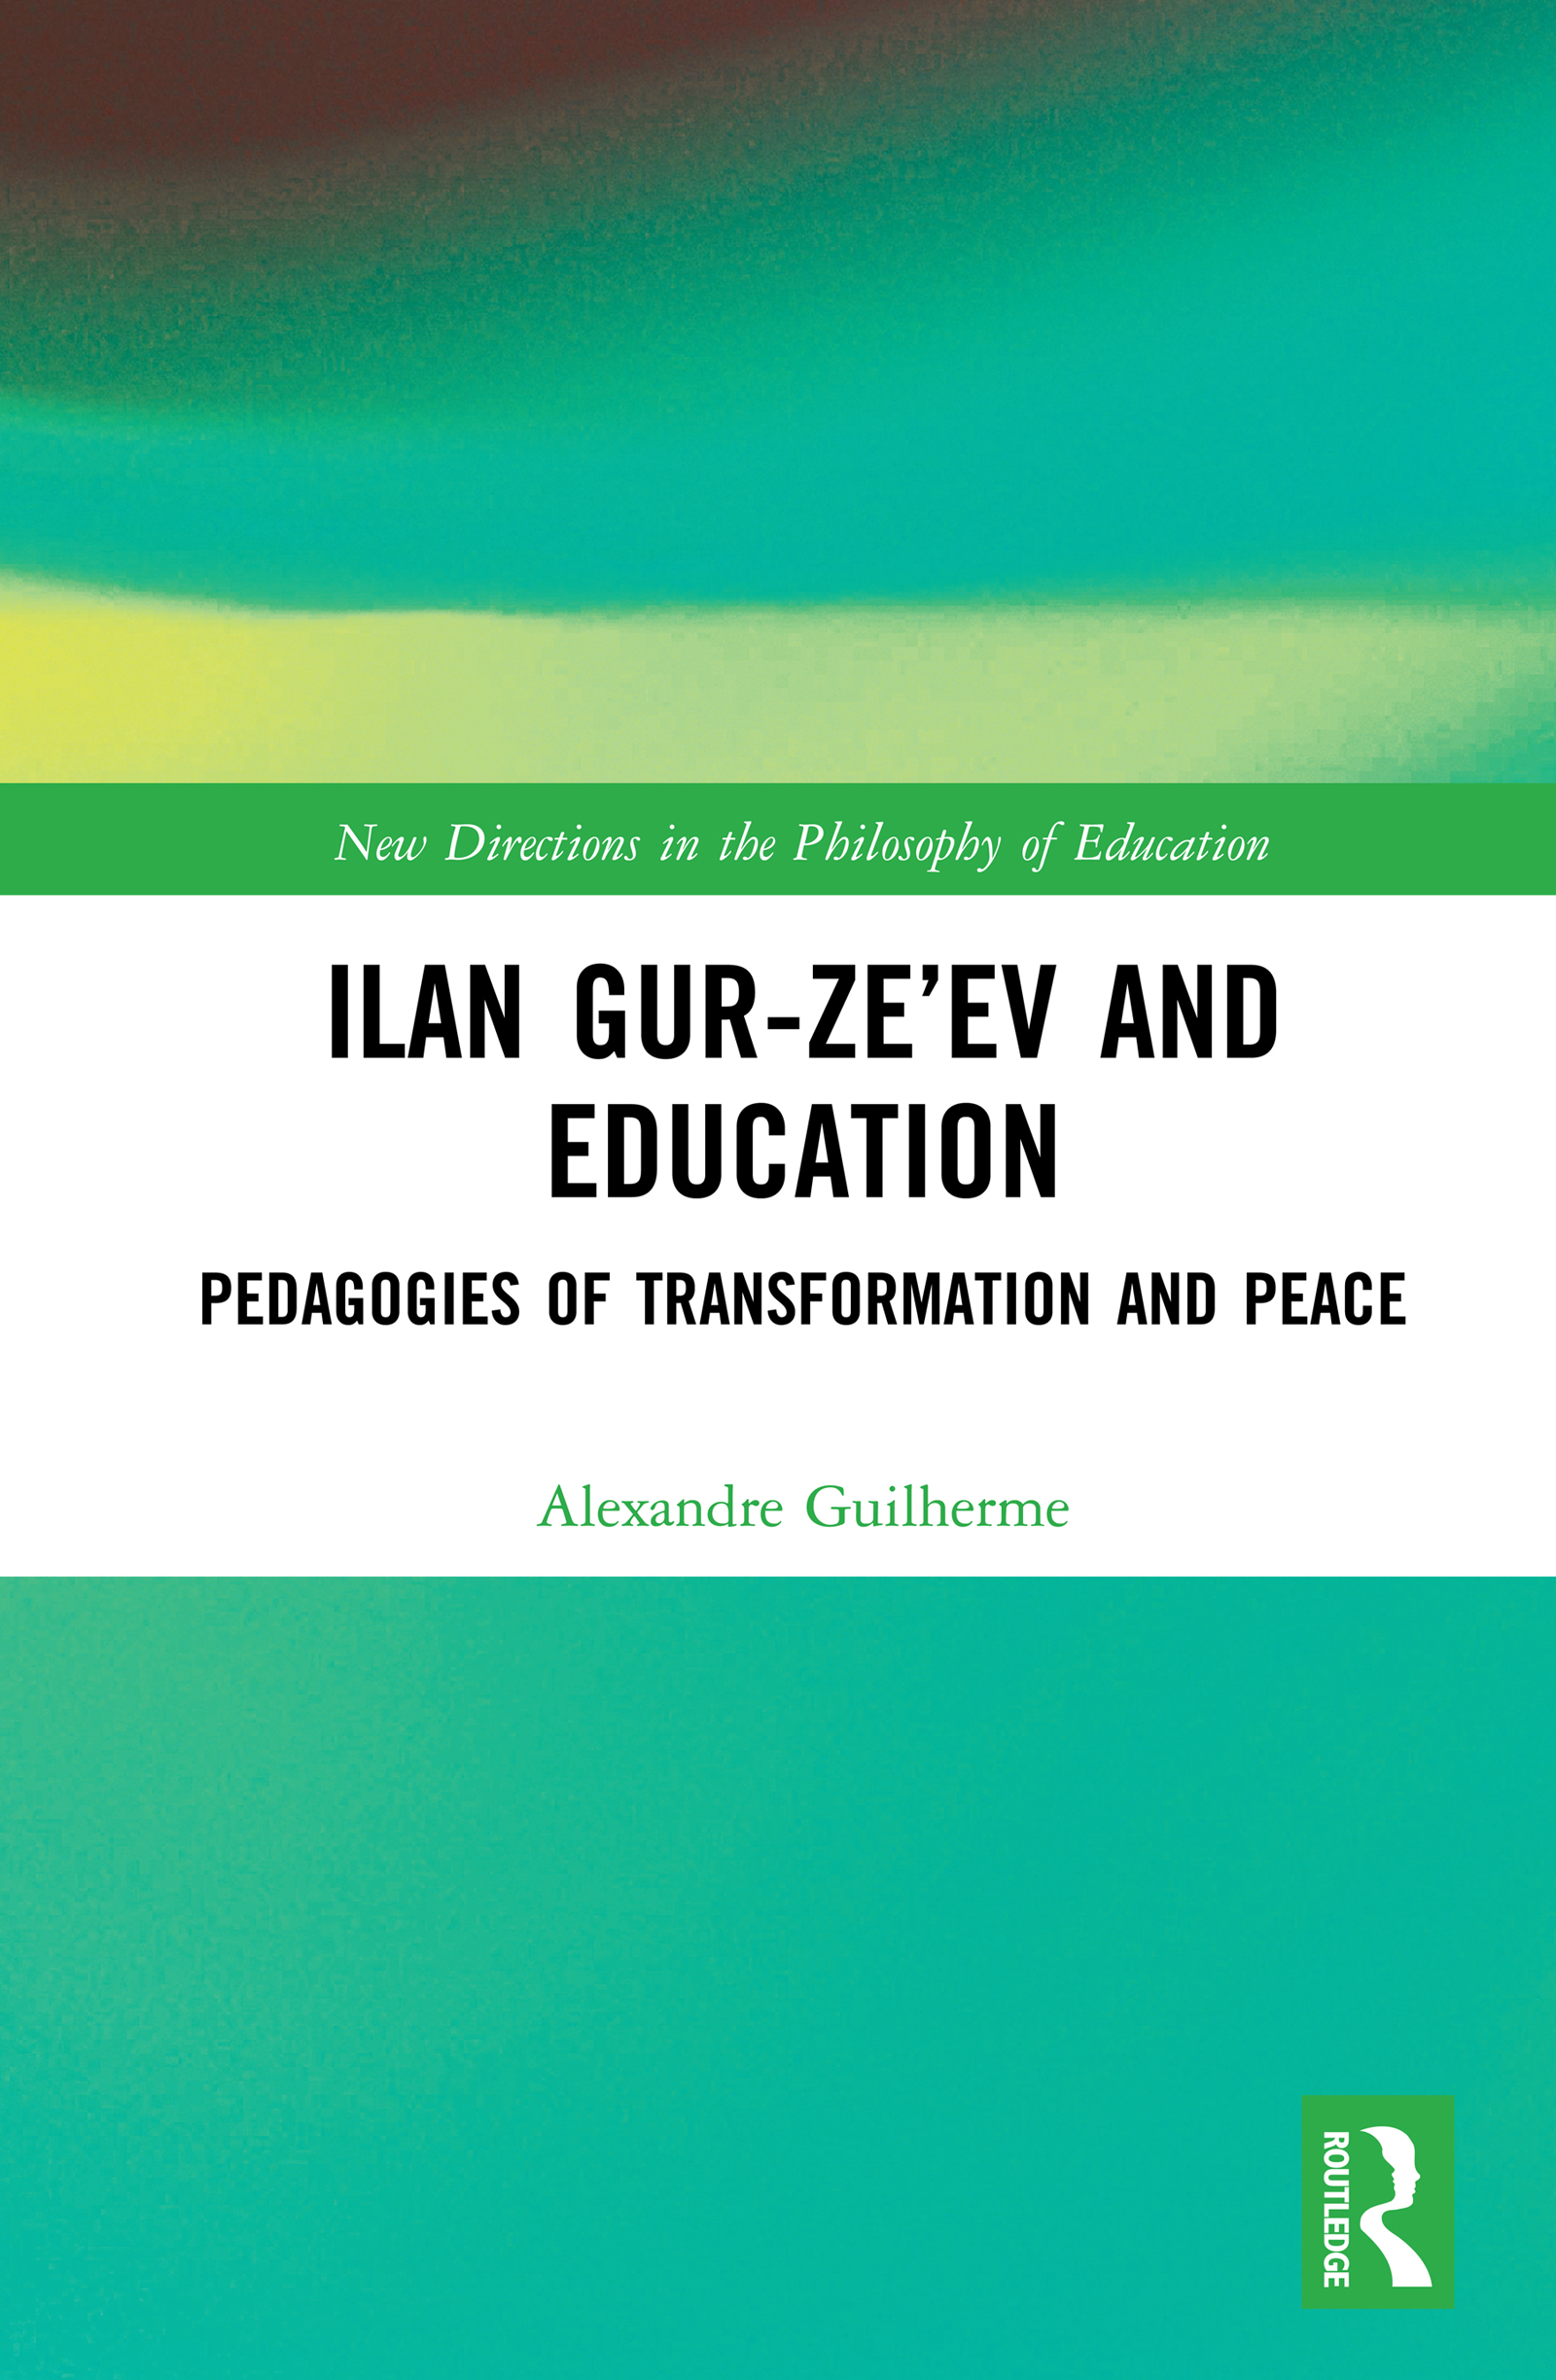 Ilan Gur-Ze'ev and Education: Pedagogies of Transformation and Peace book cover